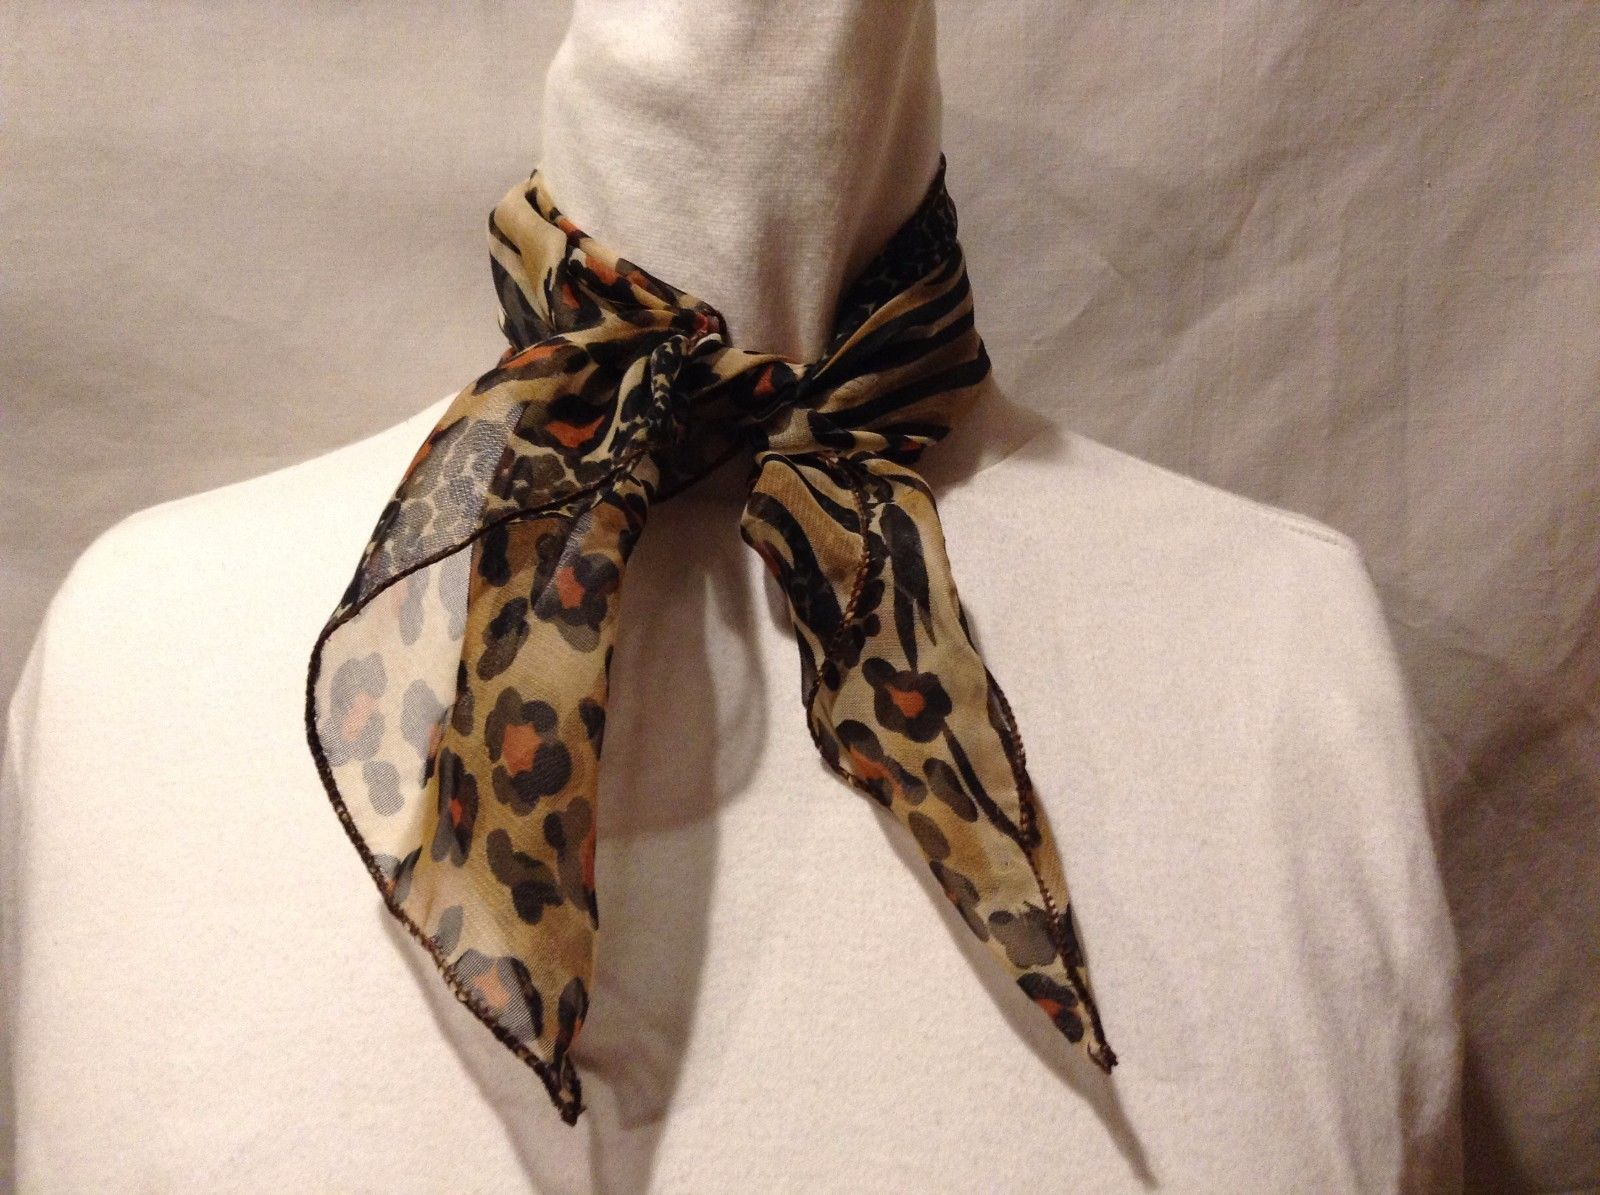 Animal Print Scarf Combo Stripe Black Brown Tan Orange Trapezoid White Spots Two